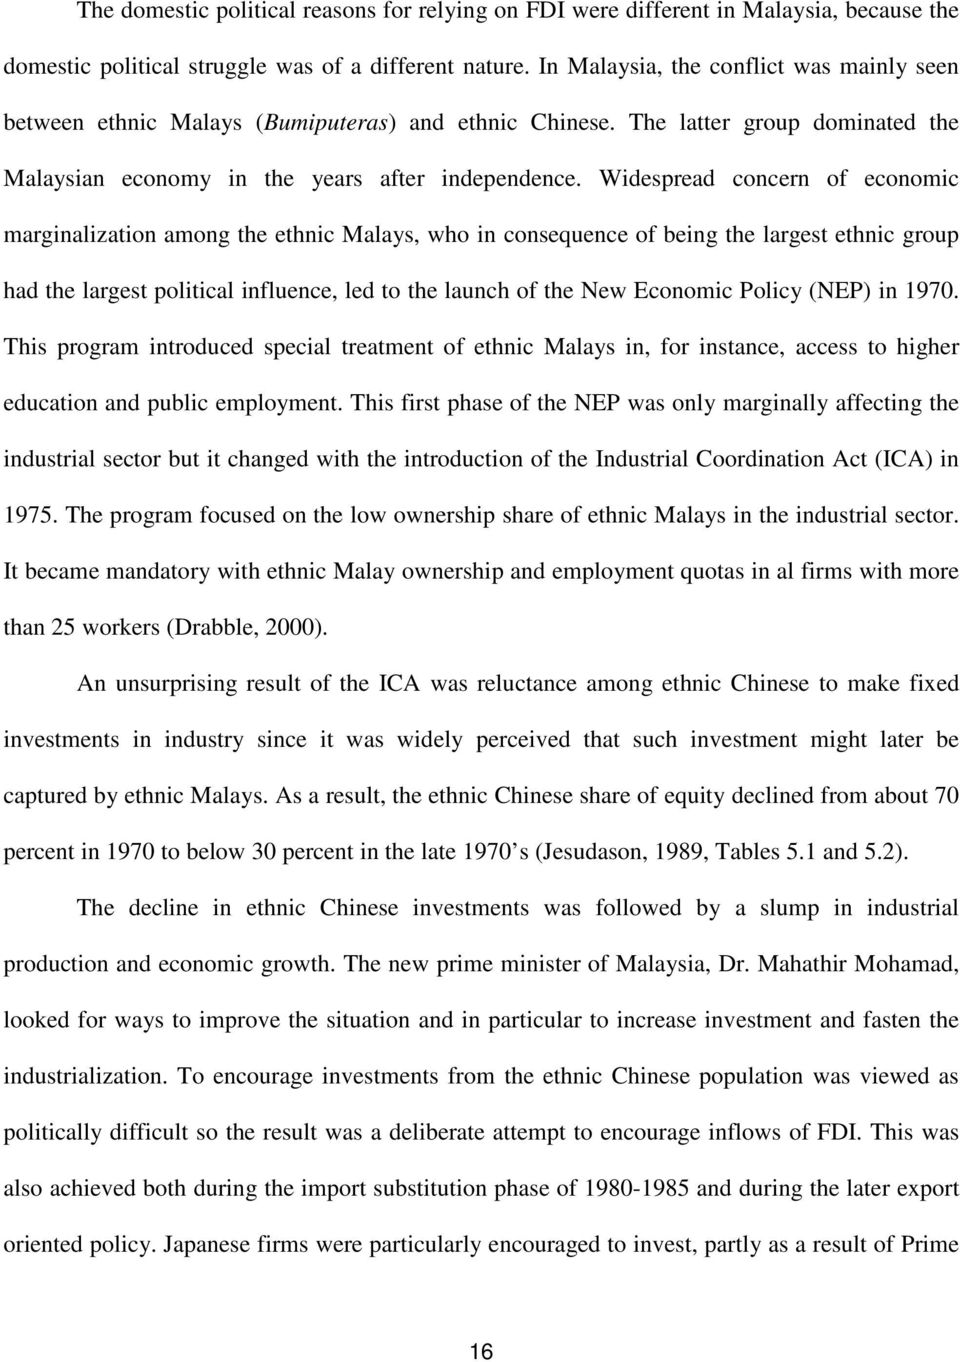 Widespread concern of economic marginalization among the ethnic Malays, who in consequence of being the largest ethnic group had the largest political influence, led to the launch of the New Economic